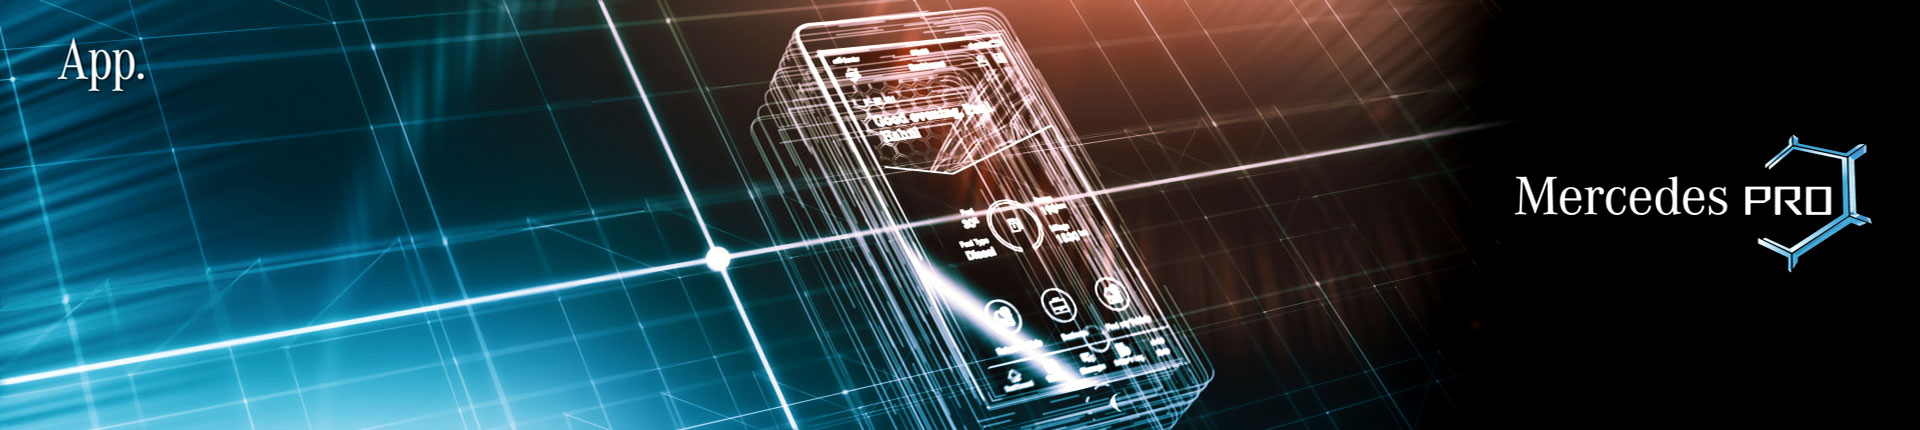 X-ray mobile phone. Still from Mercedes-Benz Trade Show.